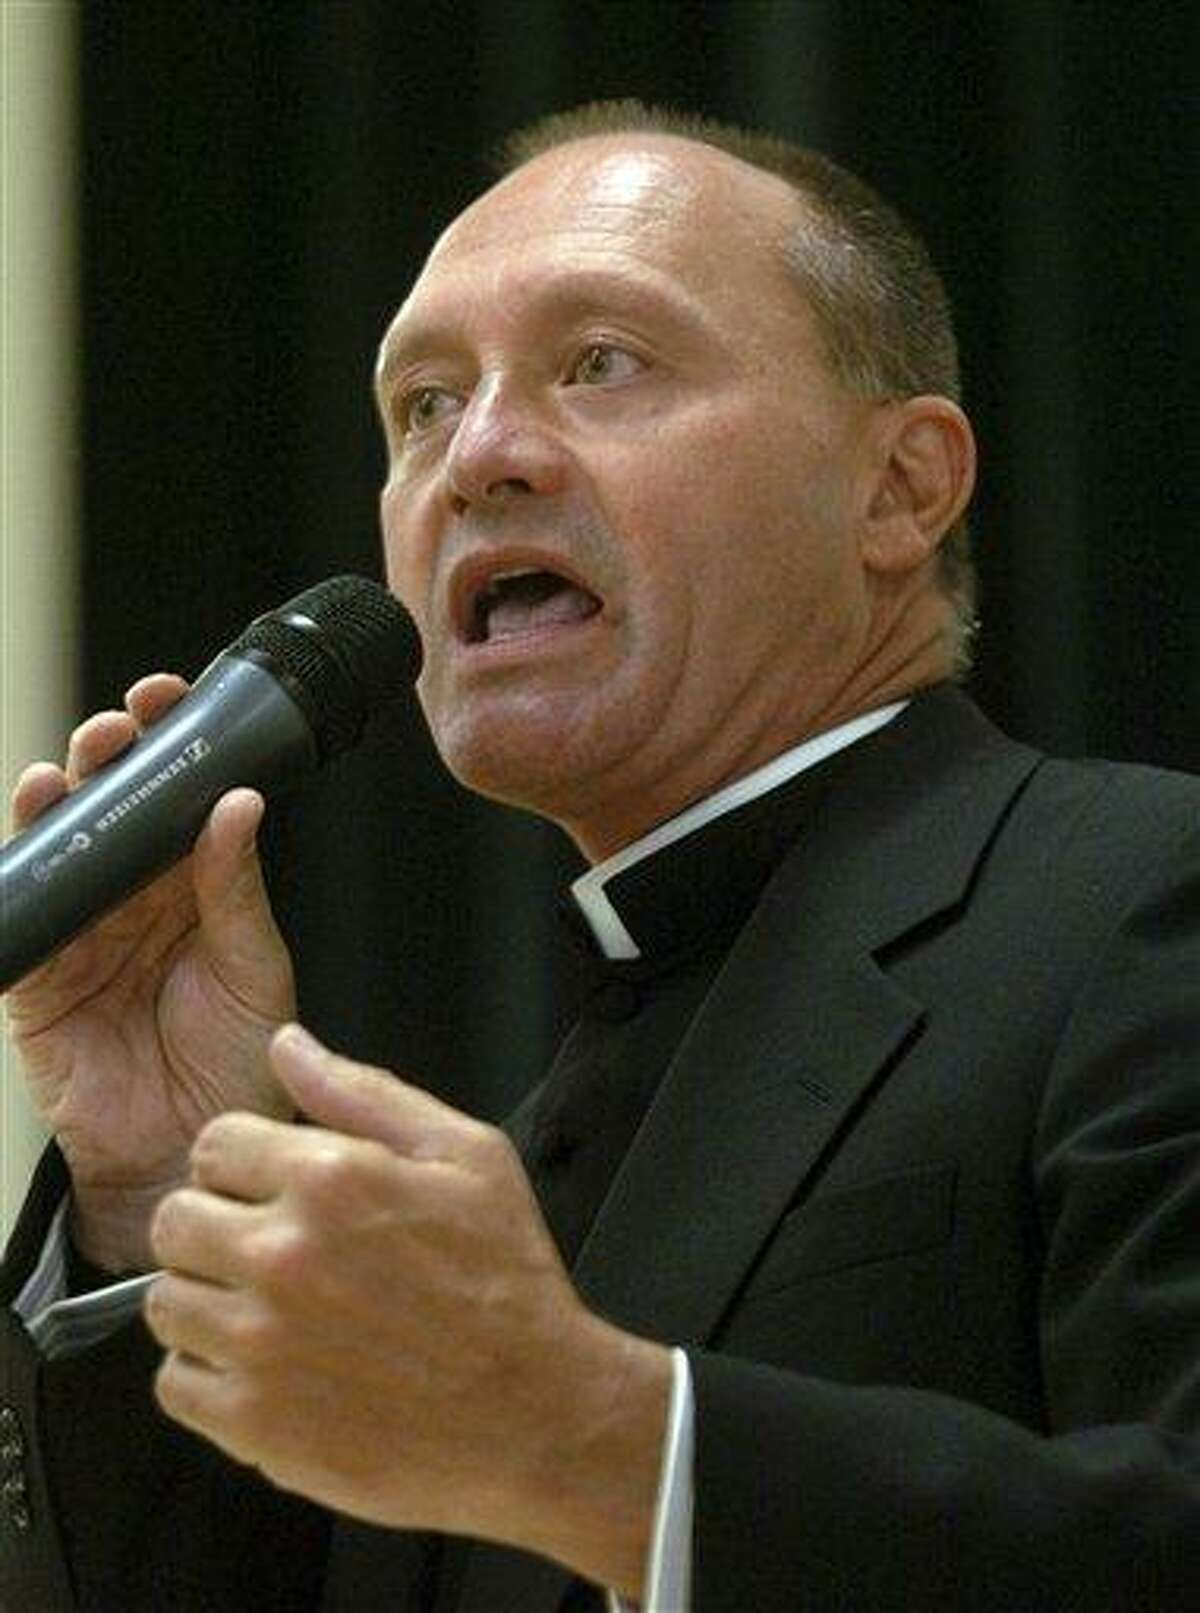 In this May 4, 2006 photo, Monsignor Kevin Wallin speaks at the Catholic Center, headquarters of the Diocese of Bridgeport, in Bridgeport, Conn. Wallin, of Waterbury, Conn., awaits a March 2013 trial on federal charges of shipping methamphetamine from California to his apartment and making more than $300,000 in drug sales in the second half of 2012. He was one of five people arrested and indicted by a grand jury in January 2013. (AP Photo/Connecticut Post)